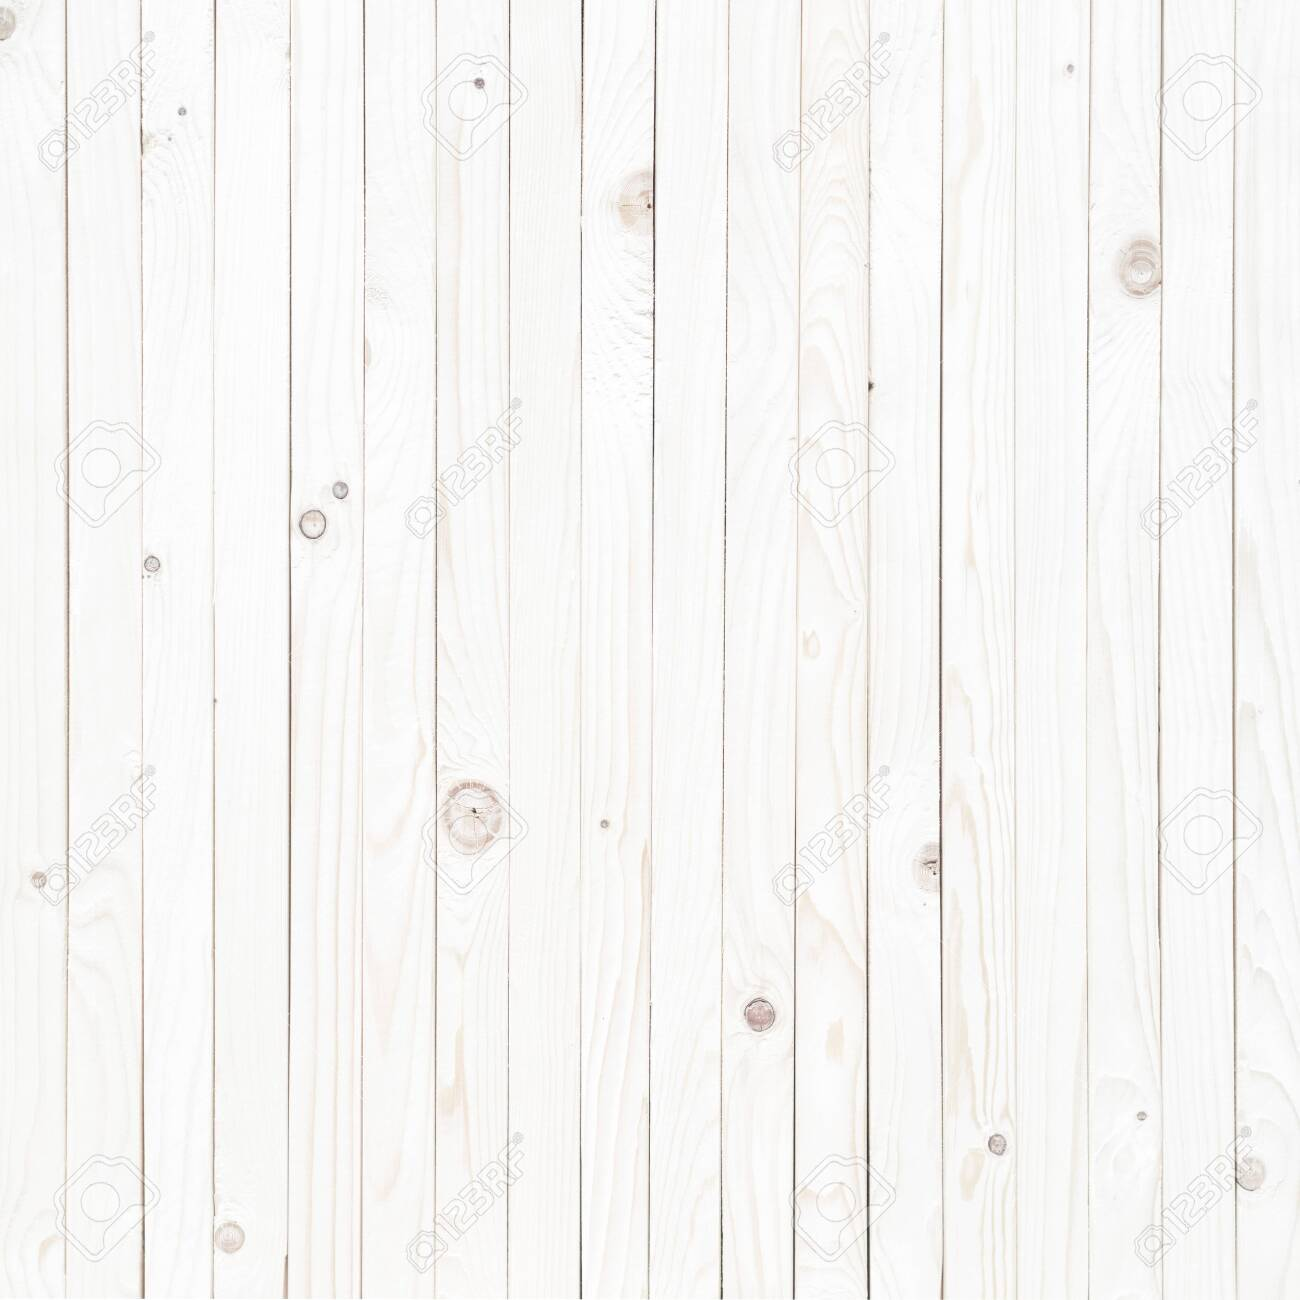 white wood texture background, wooden table top view - 129220774